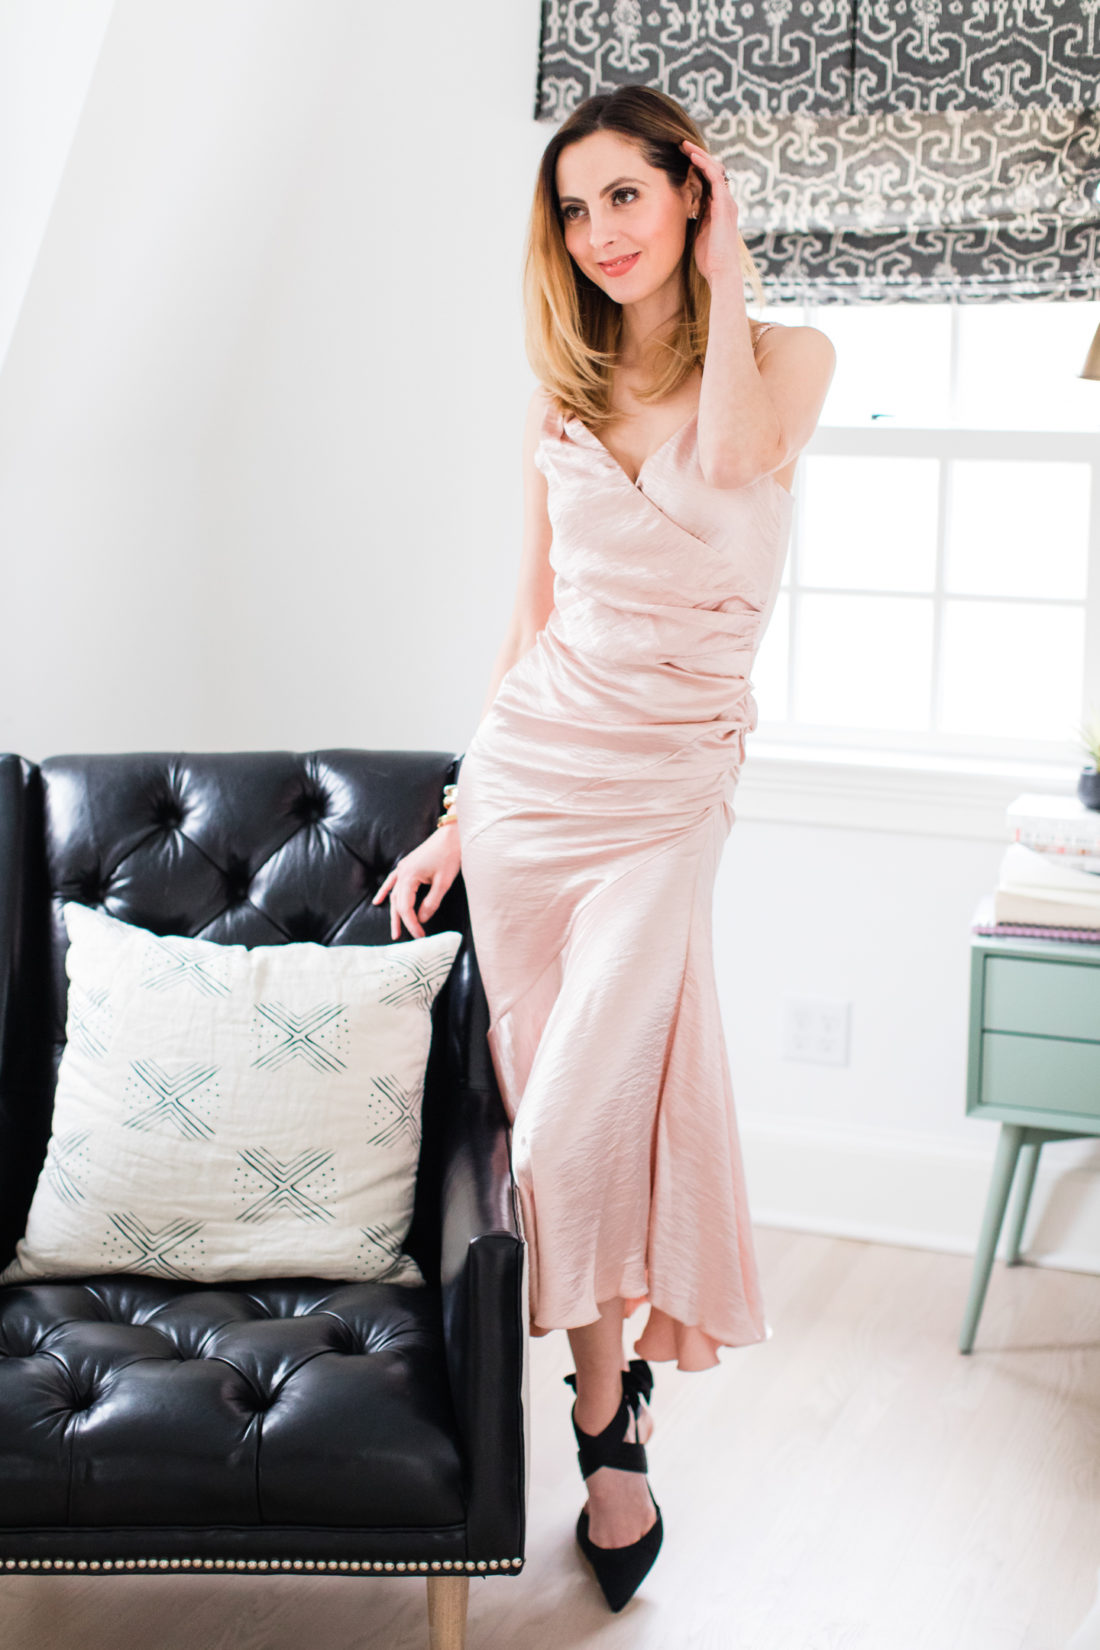 Eva Amurri Martino wears a blush pink silk dress for date night in the master bedroom of her Connecticut home